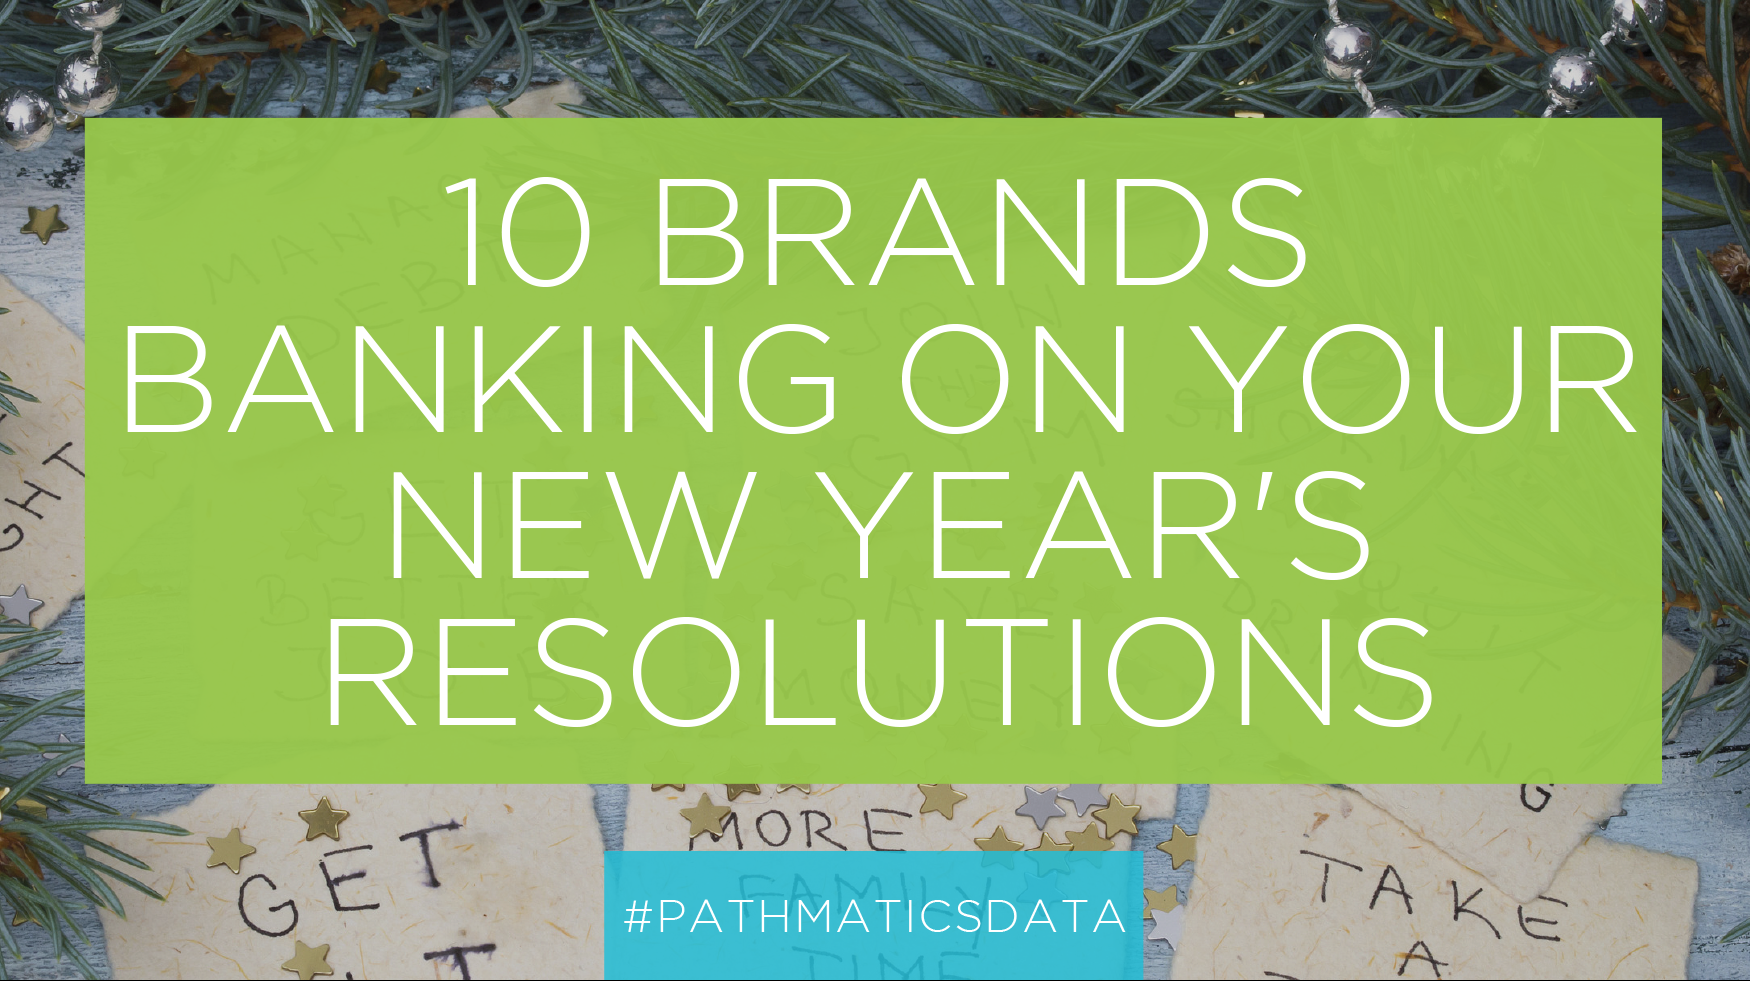 10 Brands Banking on Your New Year's Resolutions - Featured Image